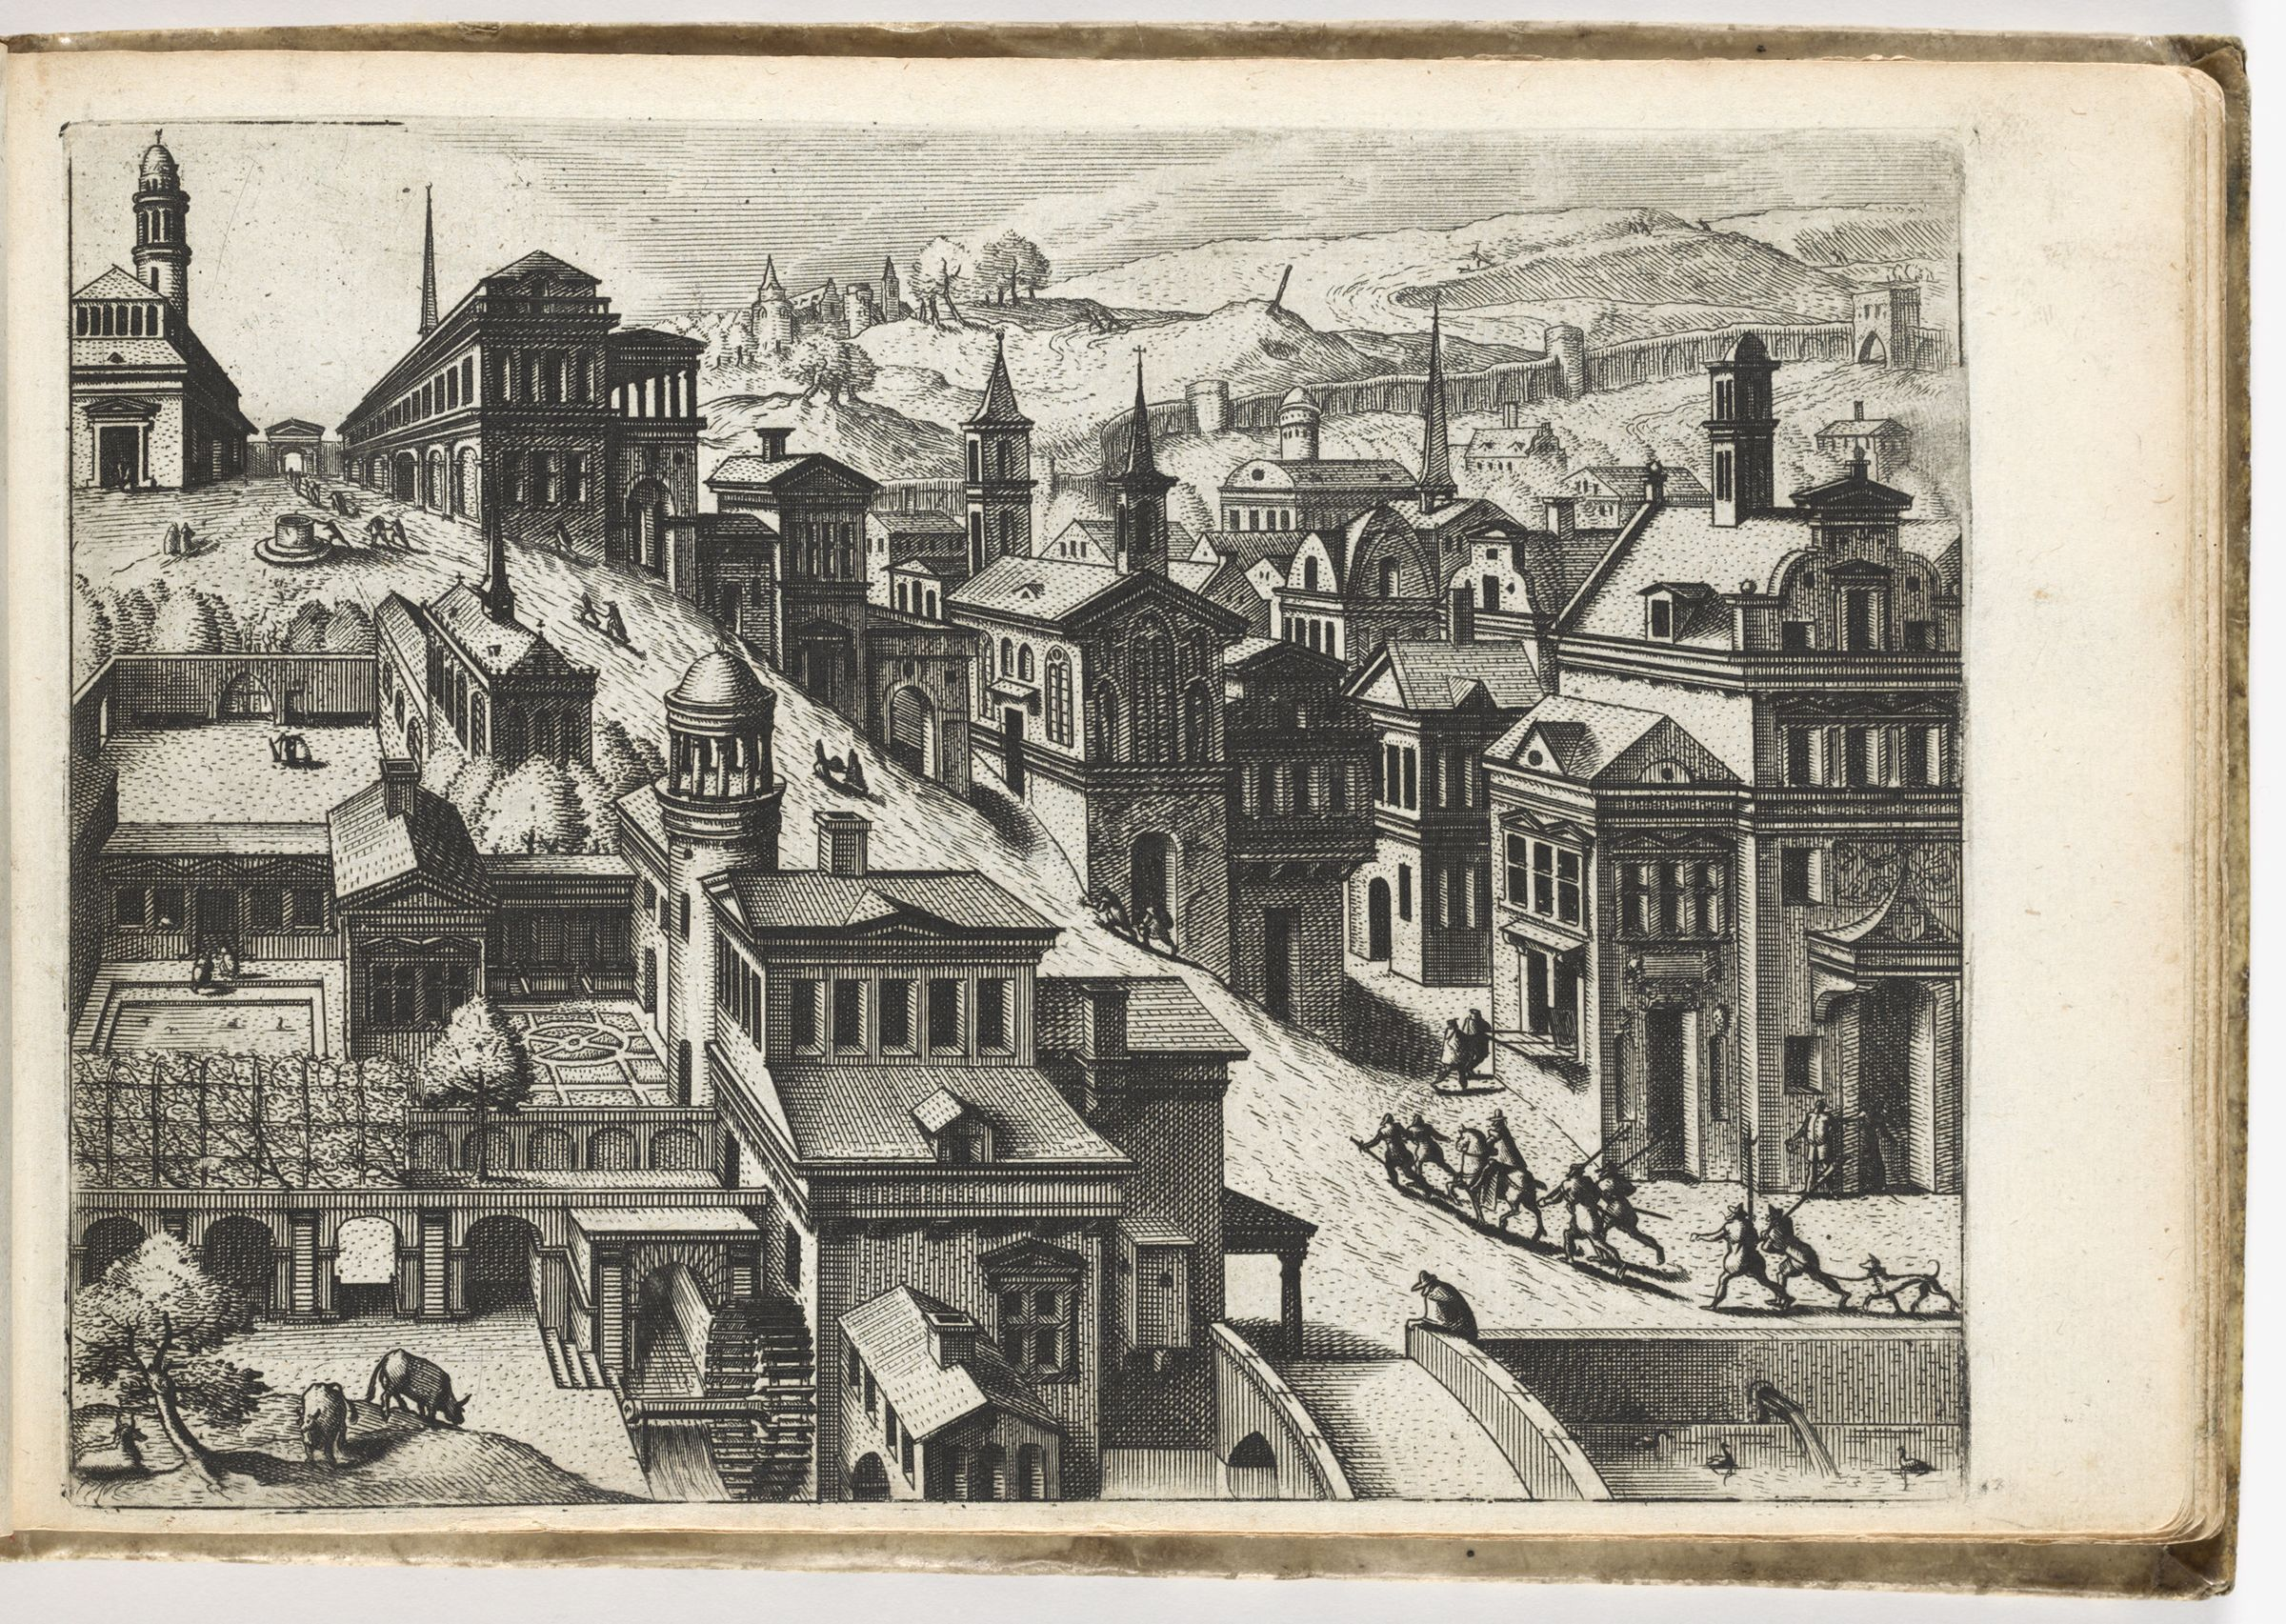 Bird's-Eye View Of A Town With A Street Going Up A Hill From Bottom Right To Top Left (N.h.)